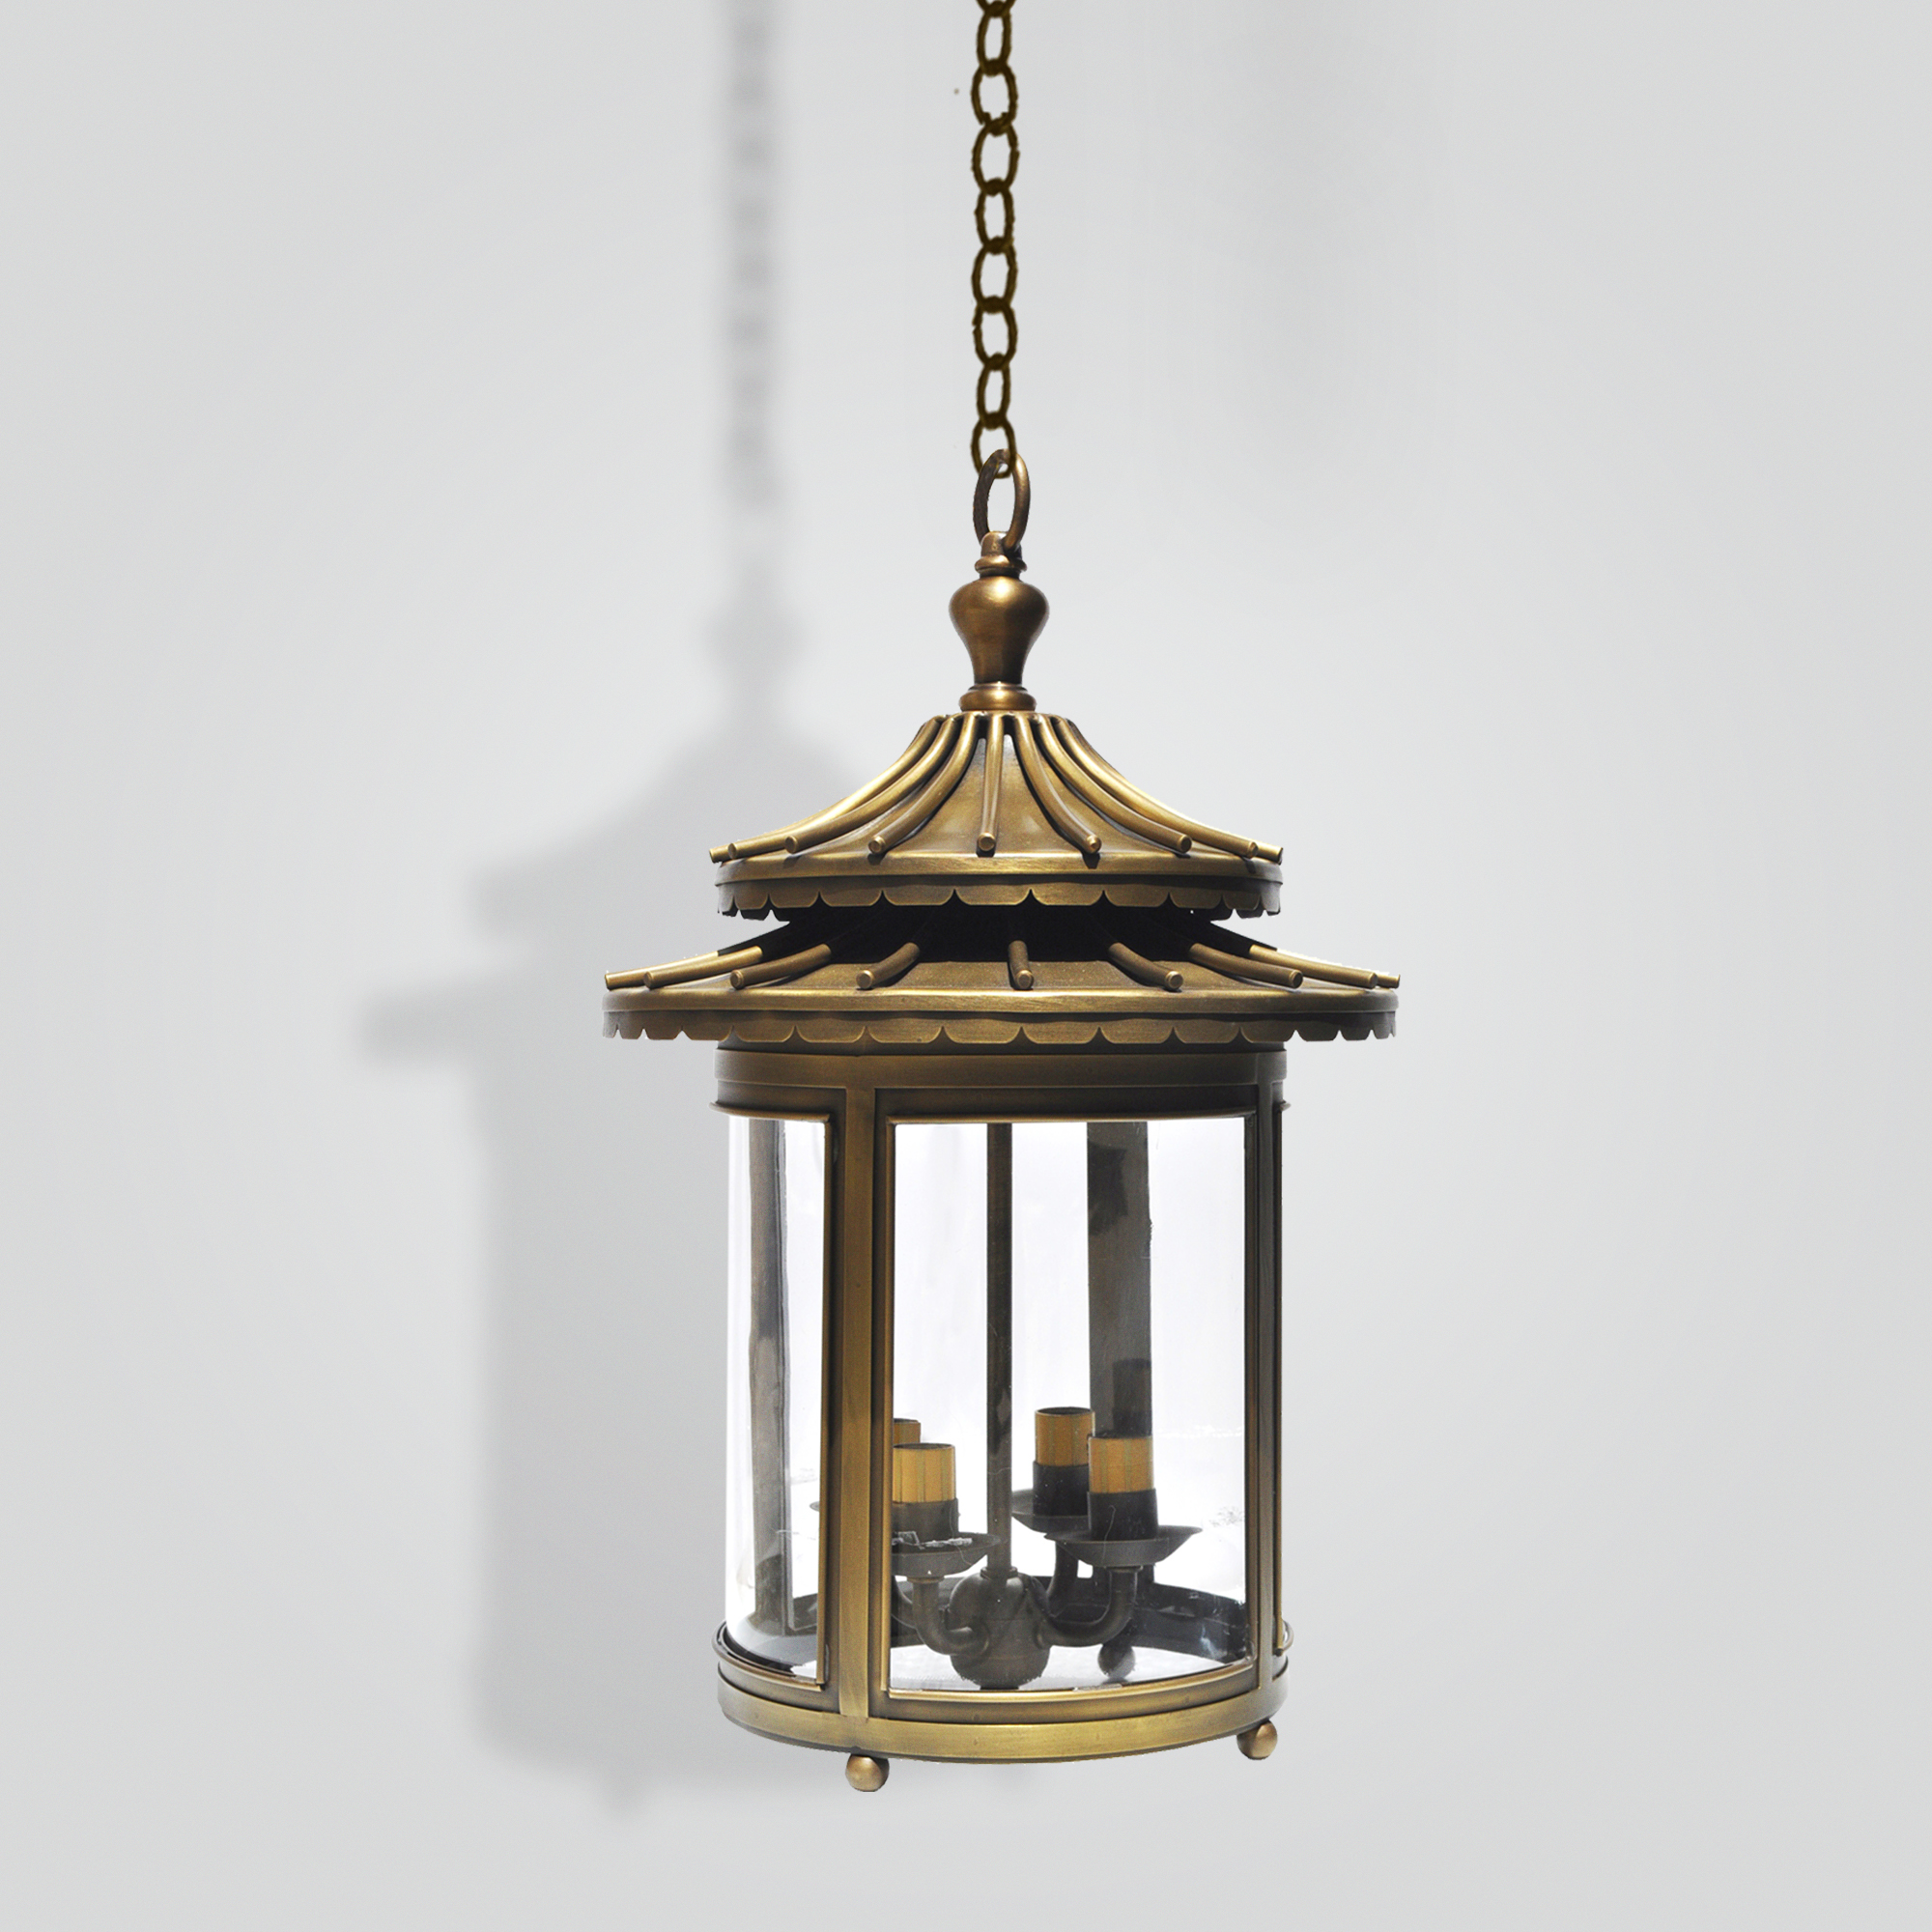 2090-cb4-br-h-ba Kyoto Pendant Light – ADG Lighting Collection